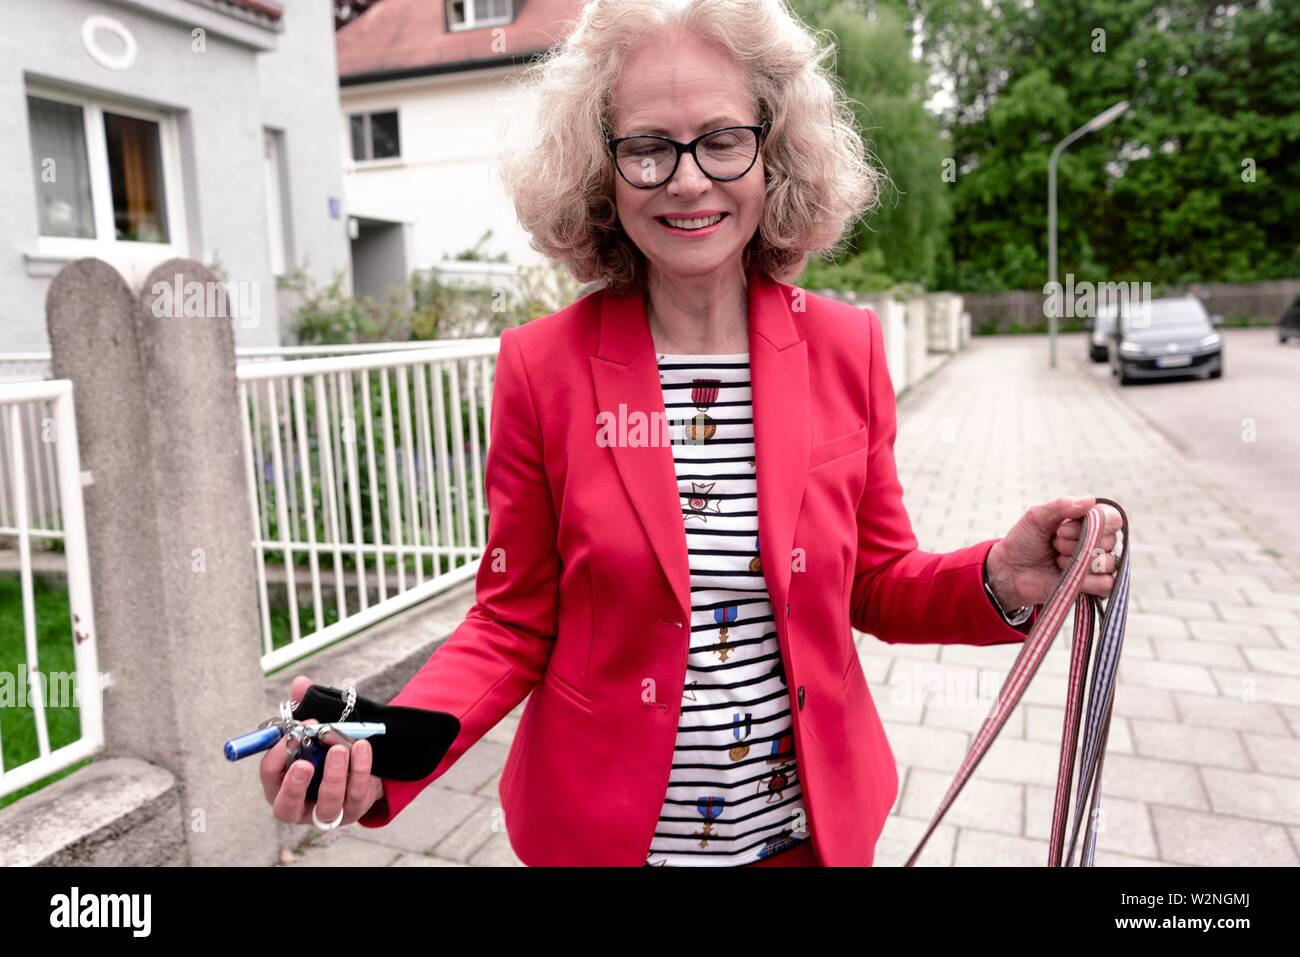 senior woman (67 years old) with dog leash and house keys in residential district, in Nymphenburg, Munich, Germany. - Stock Image